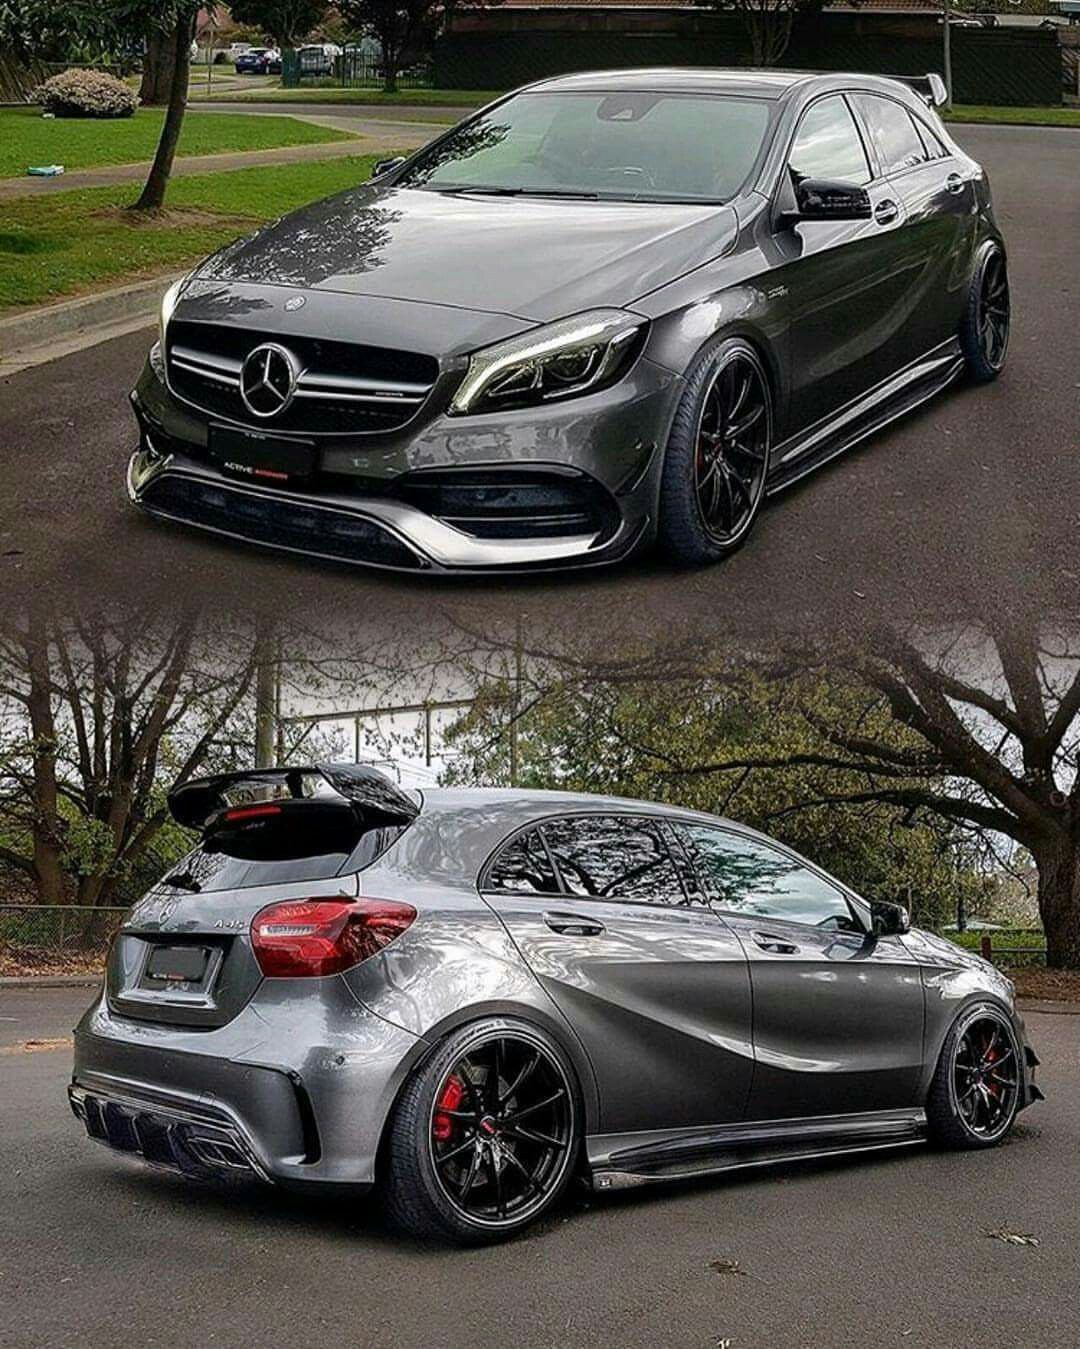 2017 mercedes amg a45 face lift 381 hp 2 0l 4matic 4 cylinder 0 100 km 4 2 sec euro cup. Black Bedroom Furniture Sets. Home Design Ideas